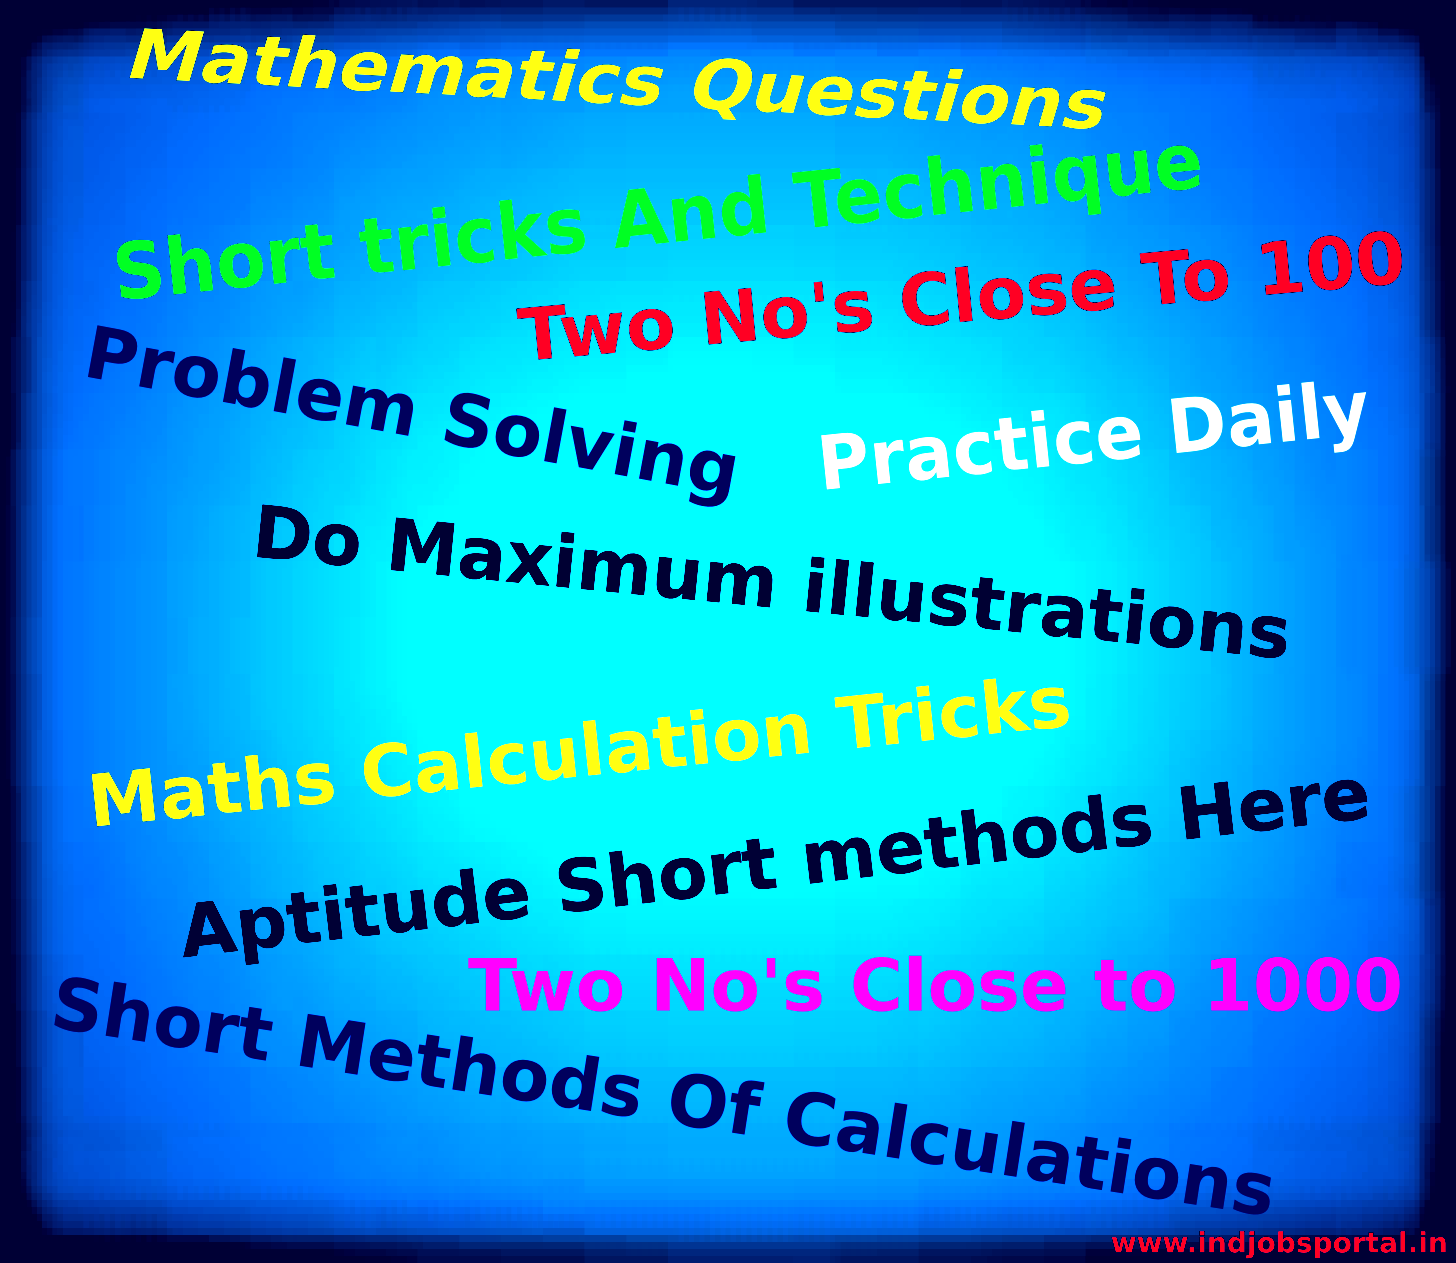 Maths Tricks, Techniques Of Mathematics Problem Solving And ...